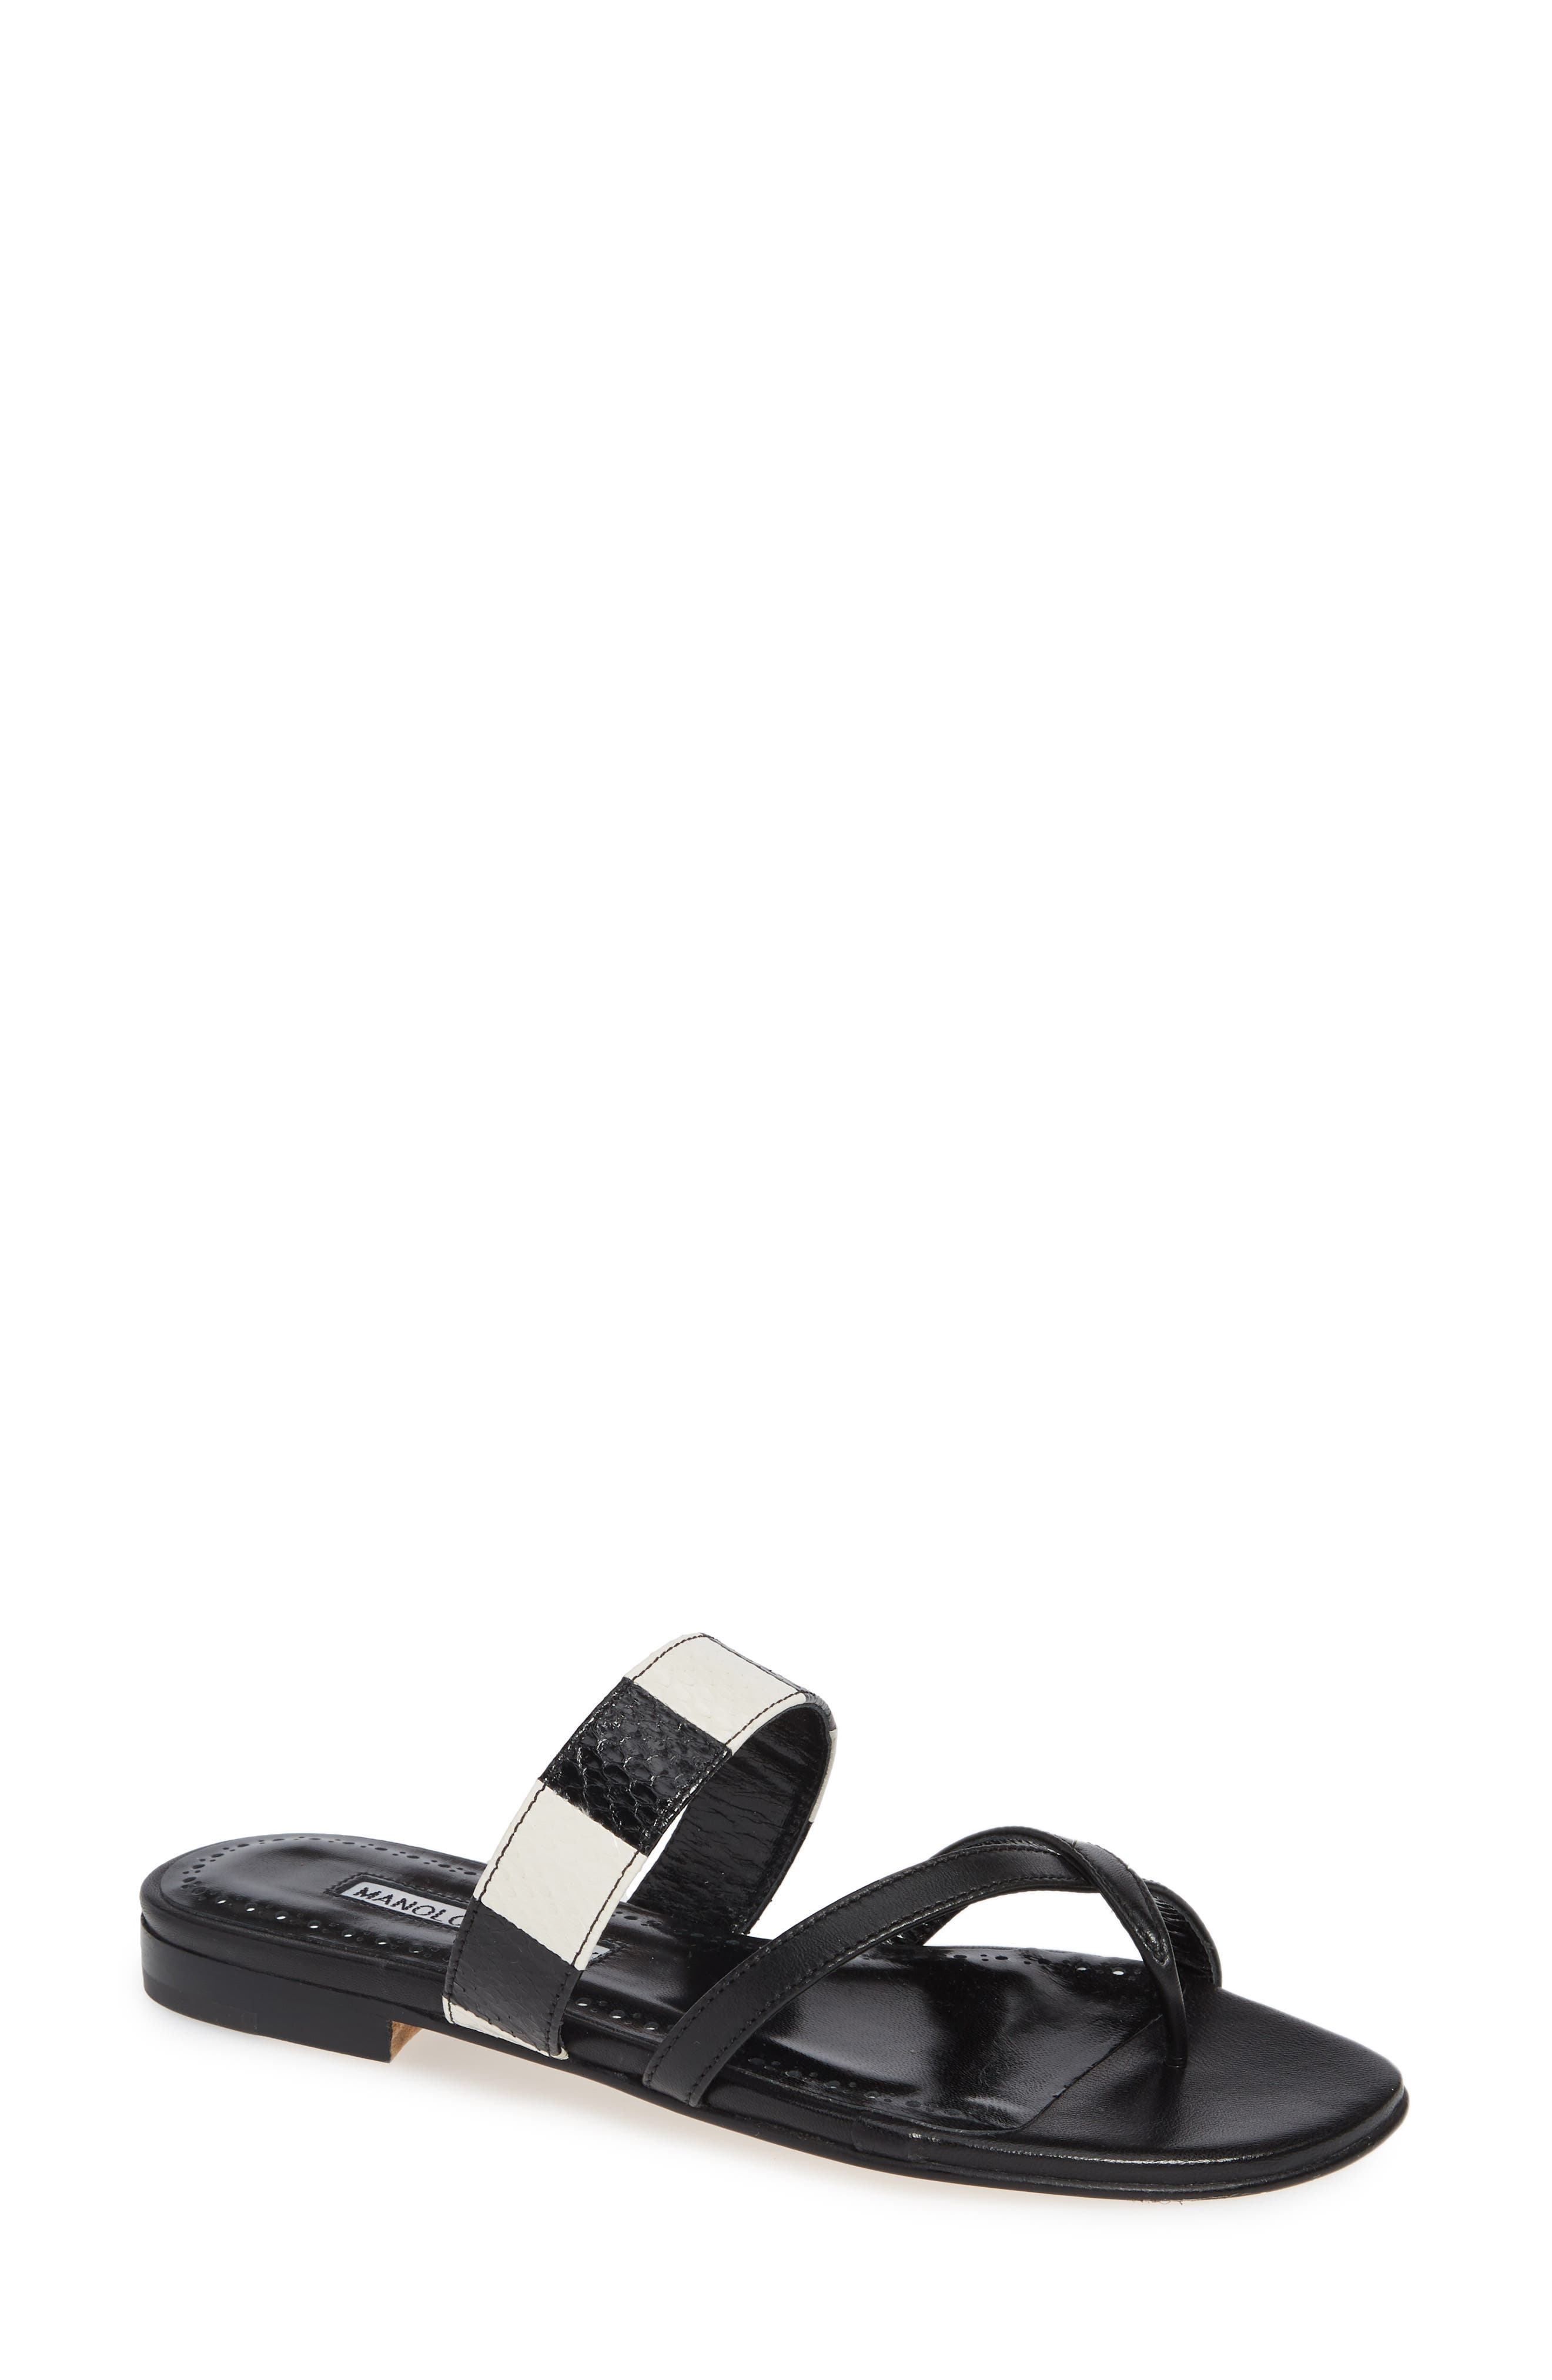 MANOLO BLAHNIK Susa Genuine Snakeskin Sandal, Main, color, BLACK/ WHITE LEATHER